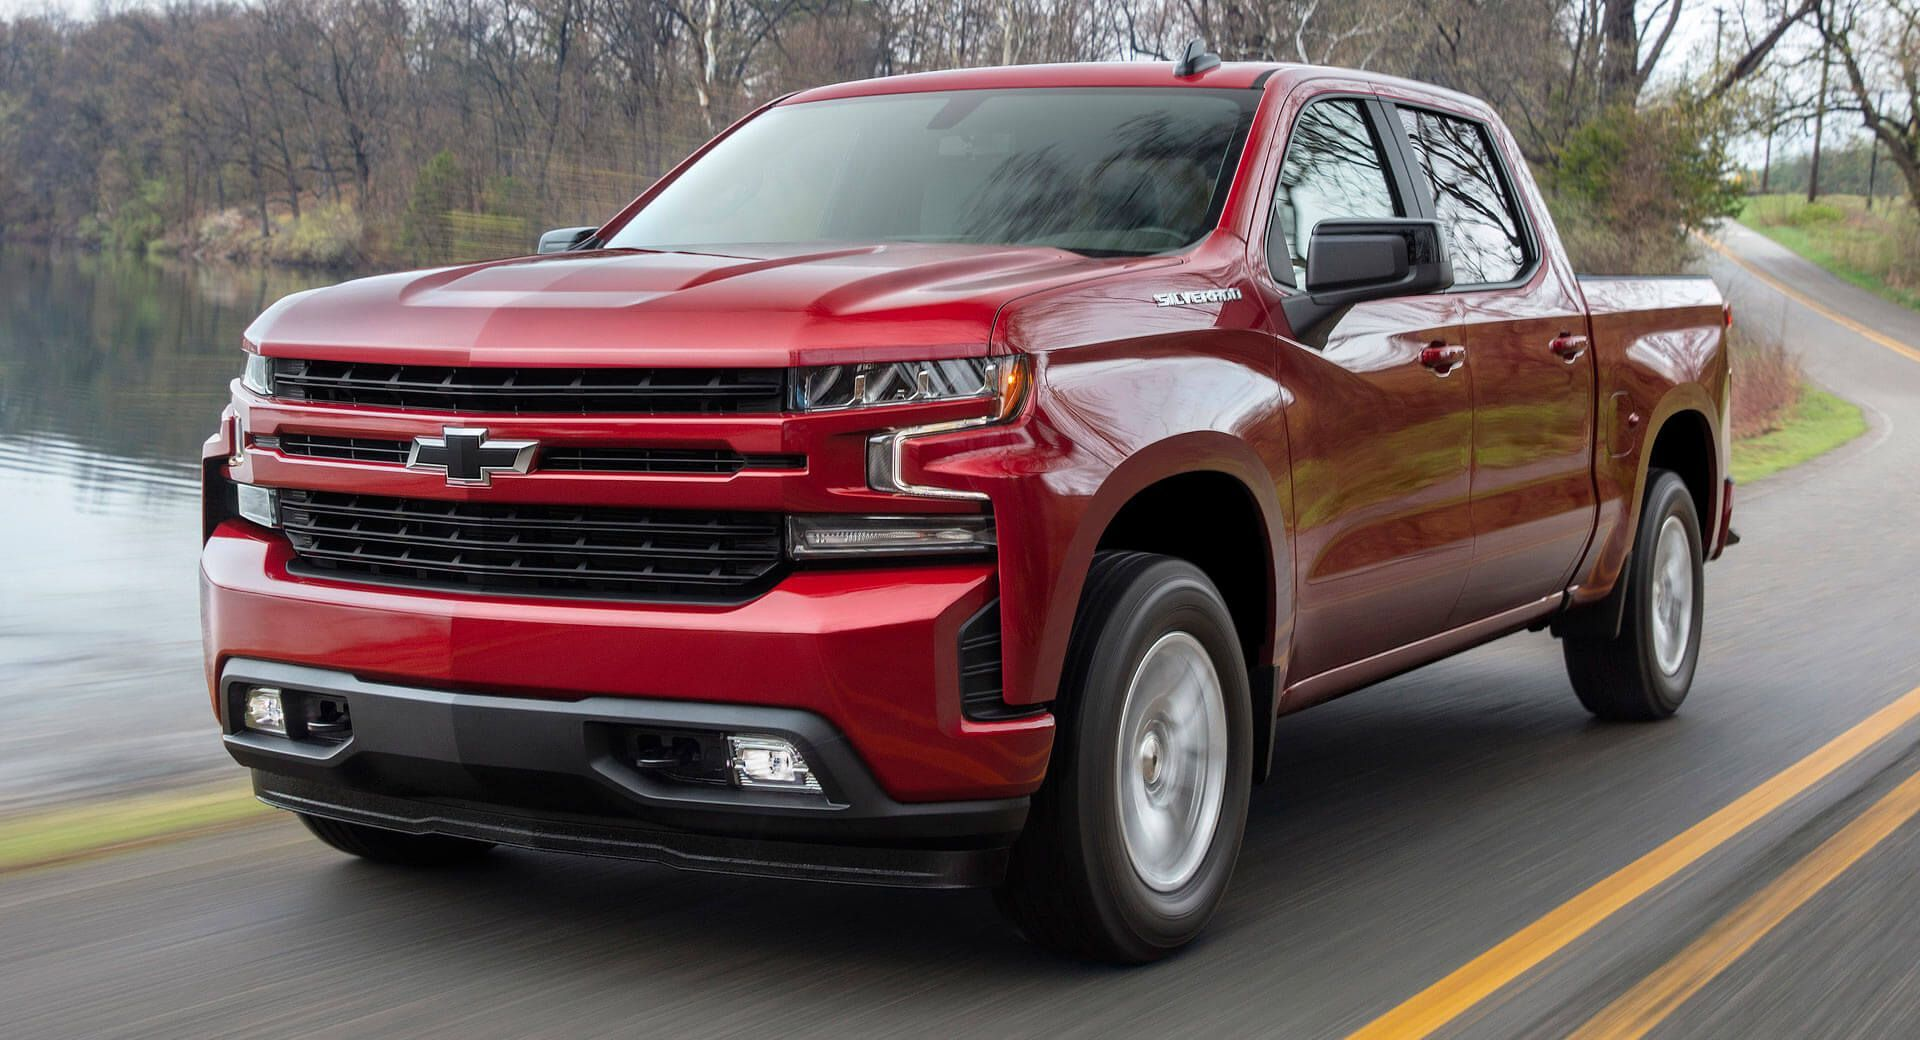 2019 Chevy Silverado Gains New 2 7 Liter 4 Cylinder Turbo With